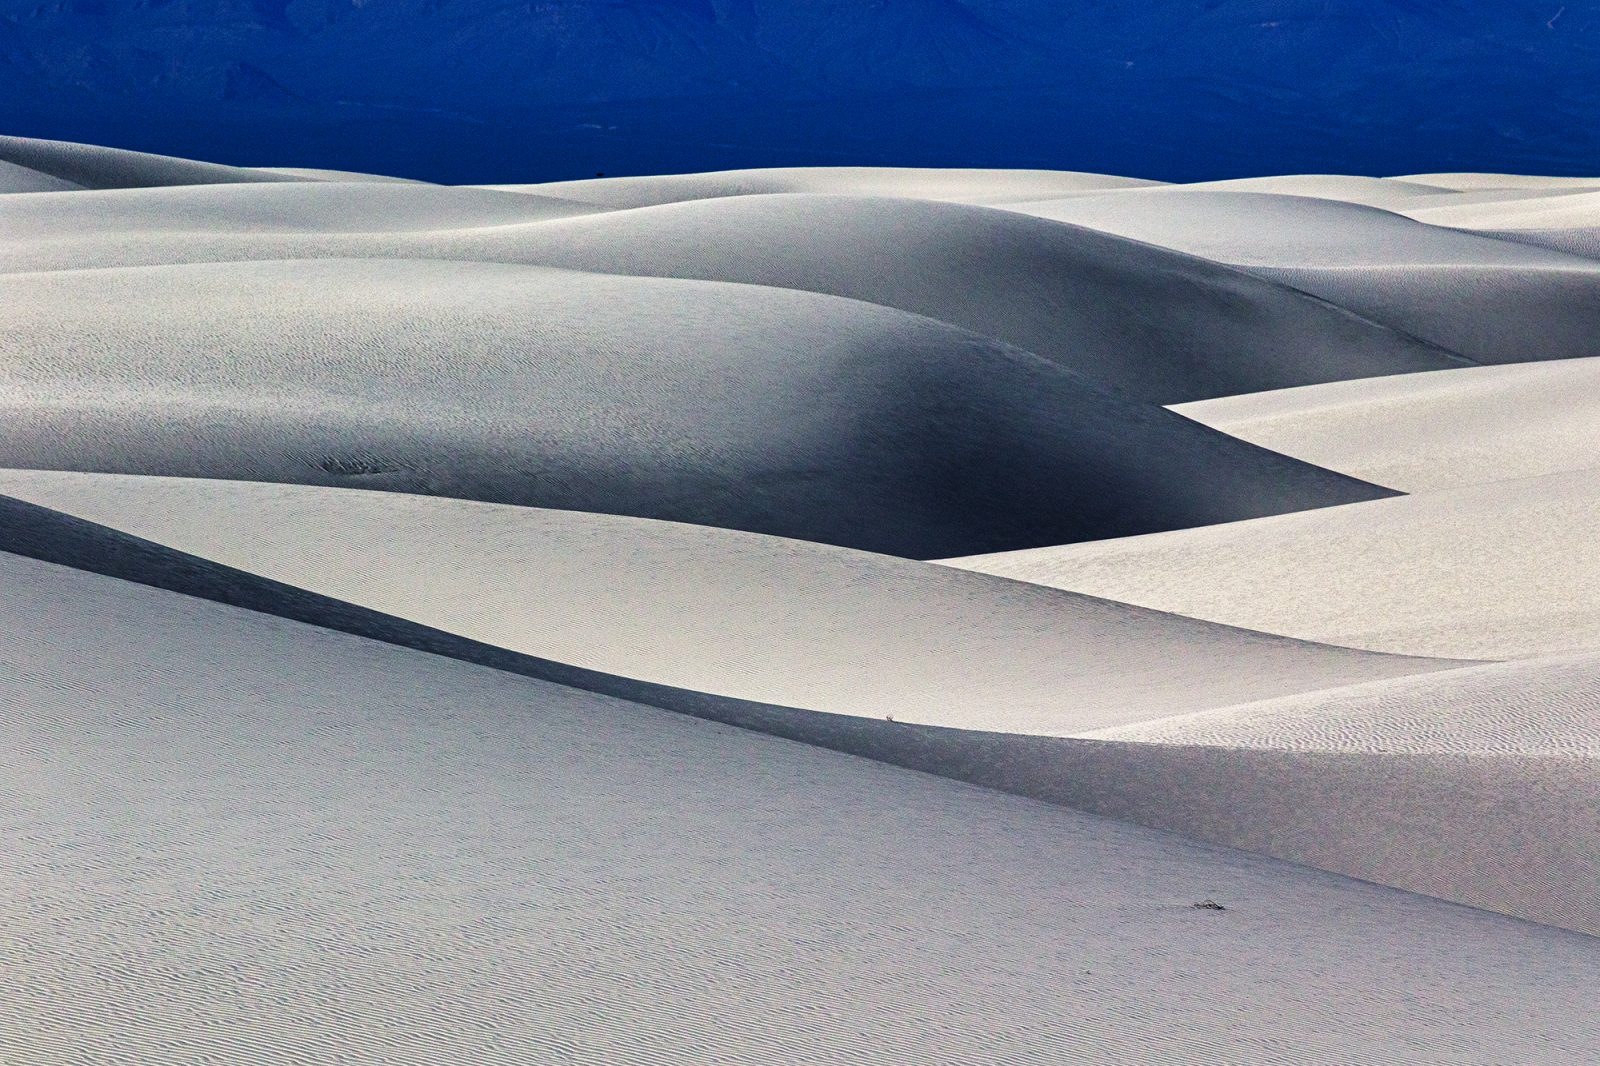 The structure of the body created by shadows in the desert